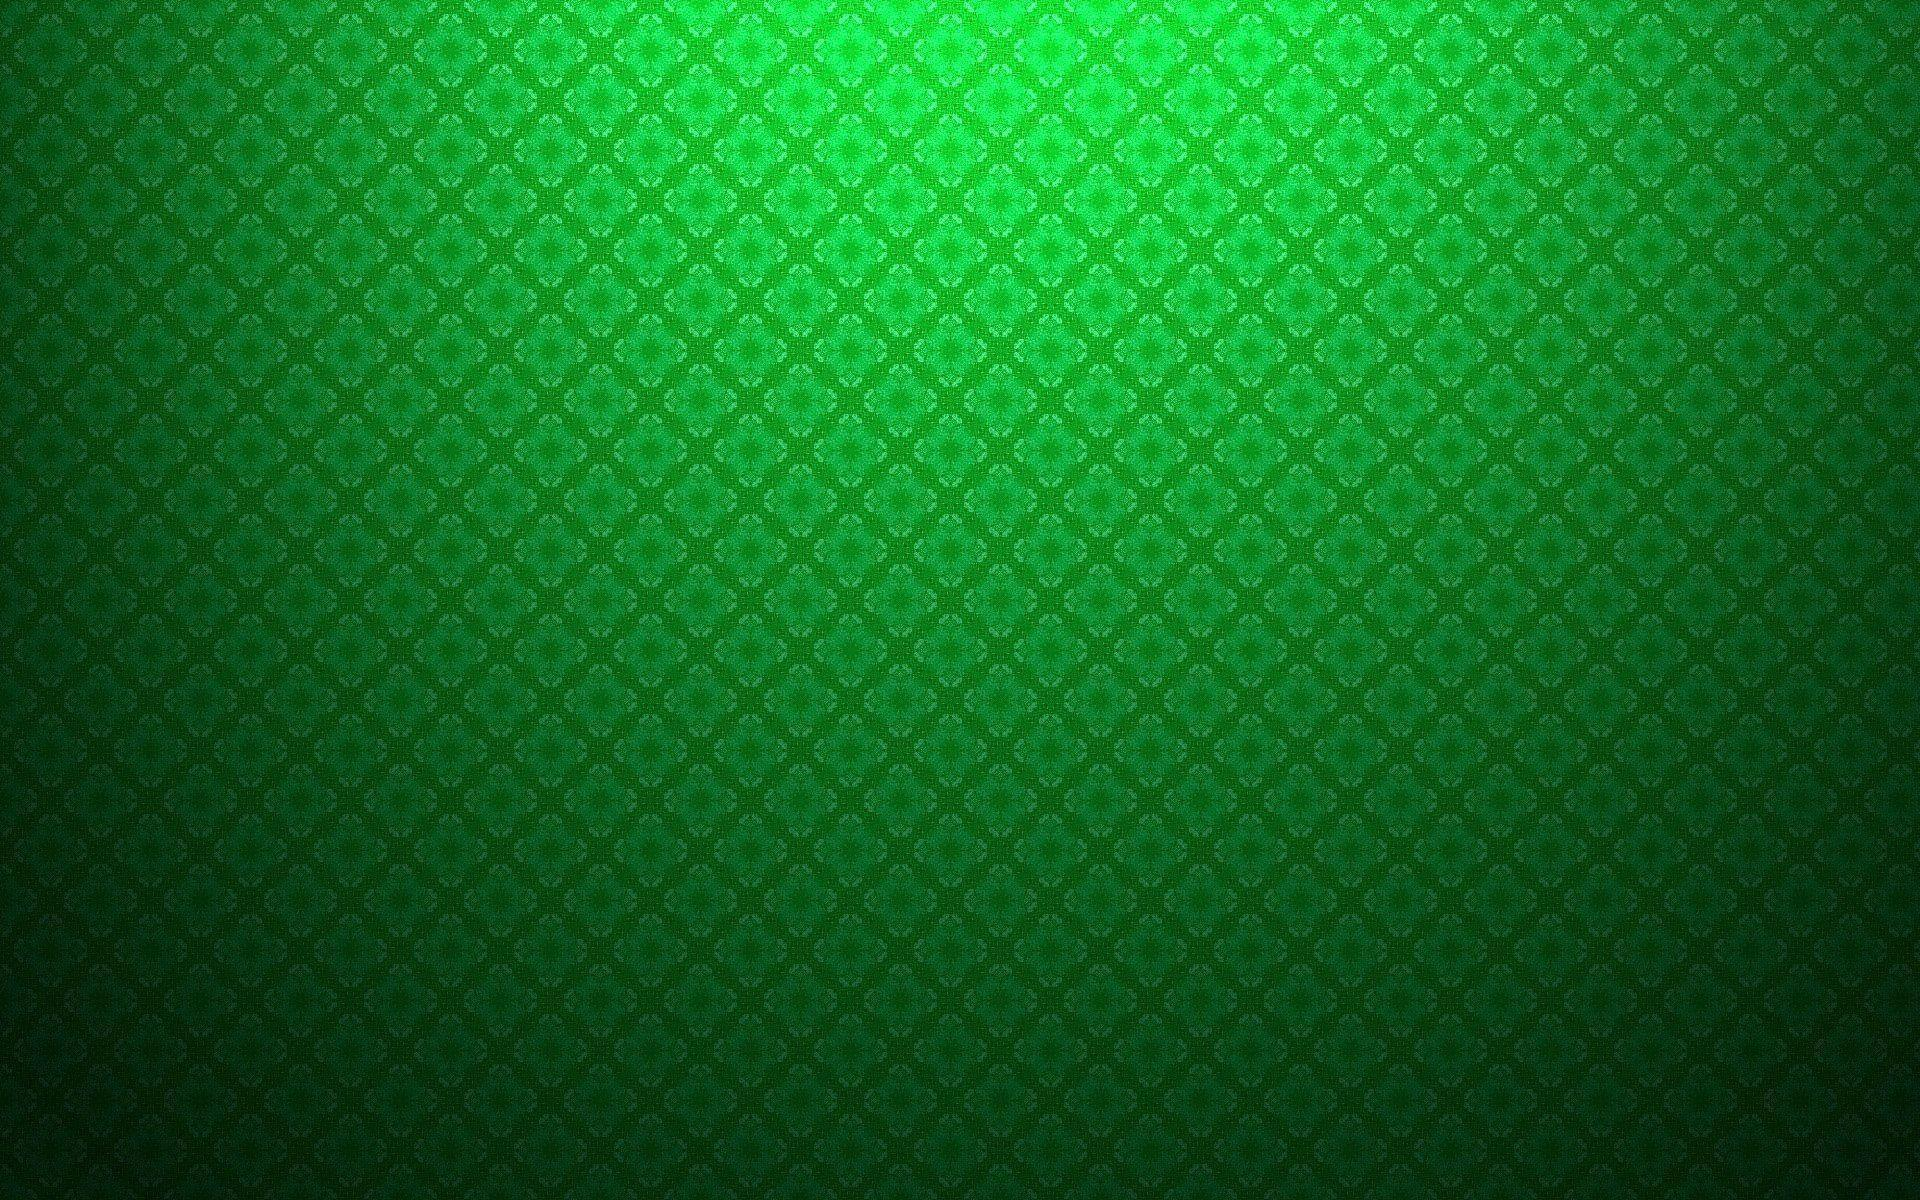 Green Backgrounds 9 193124 Image HD Wallpapers